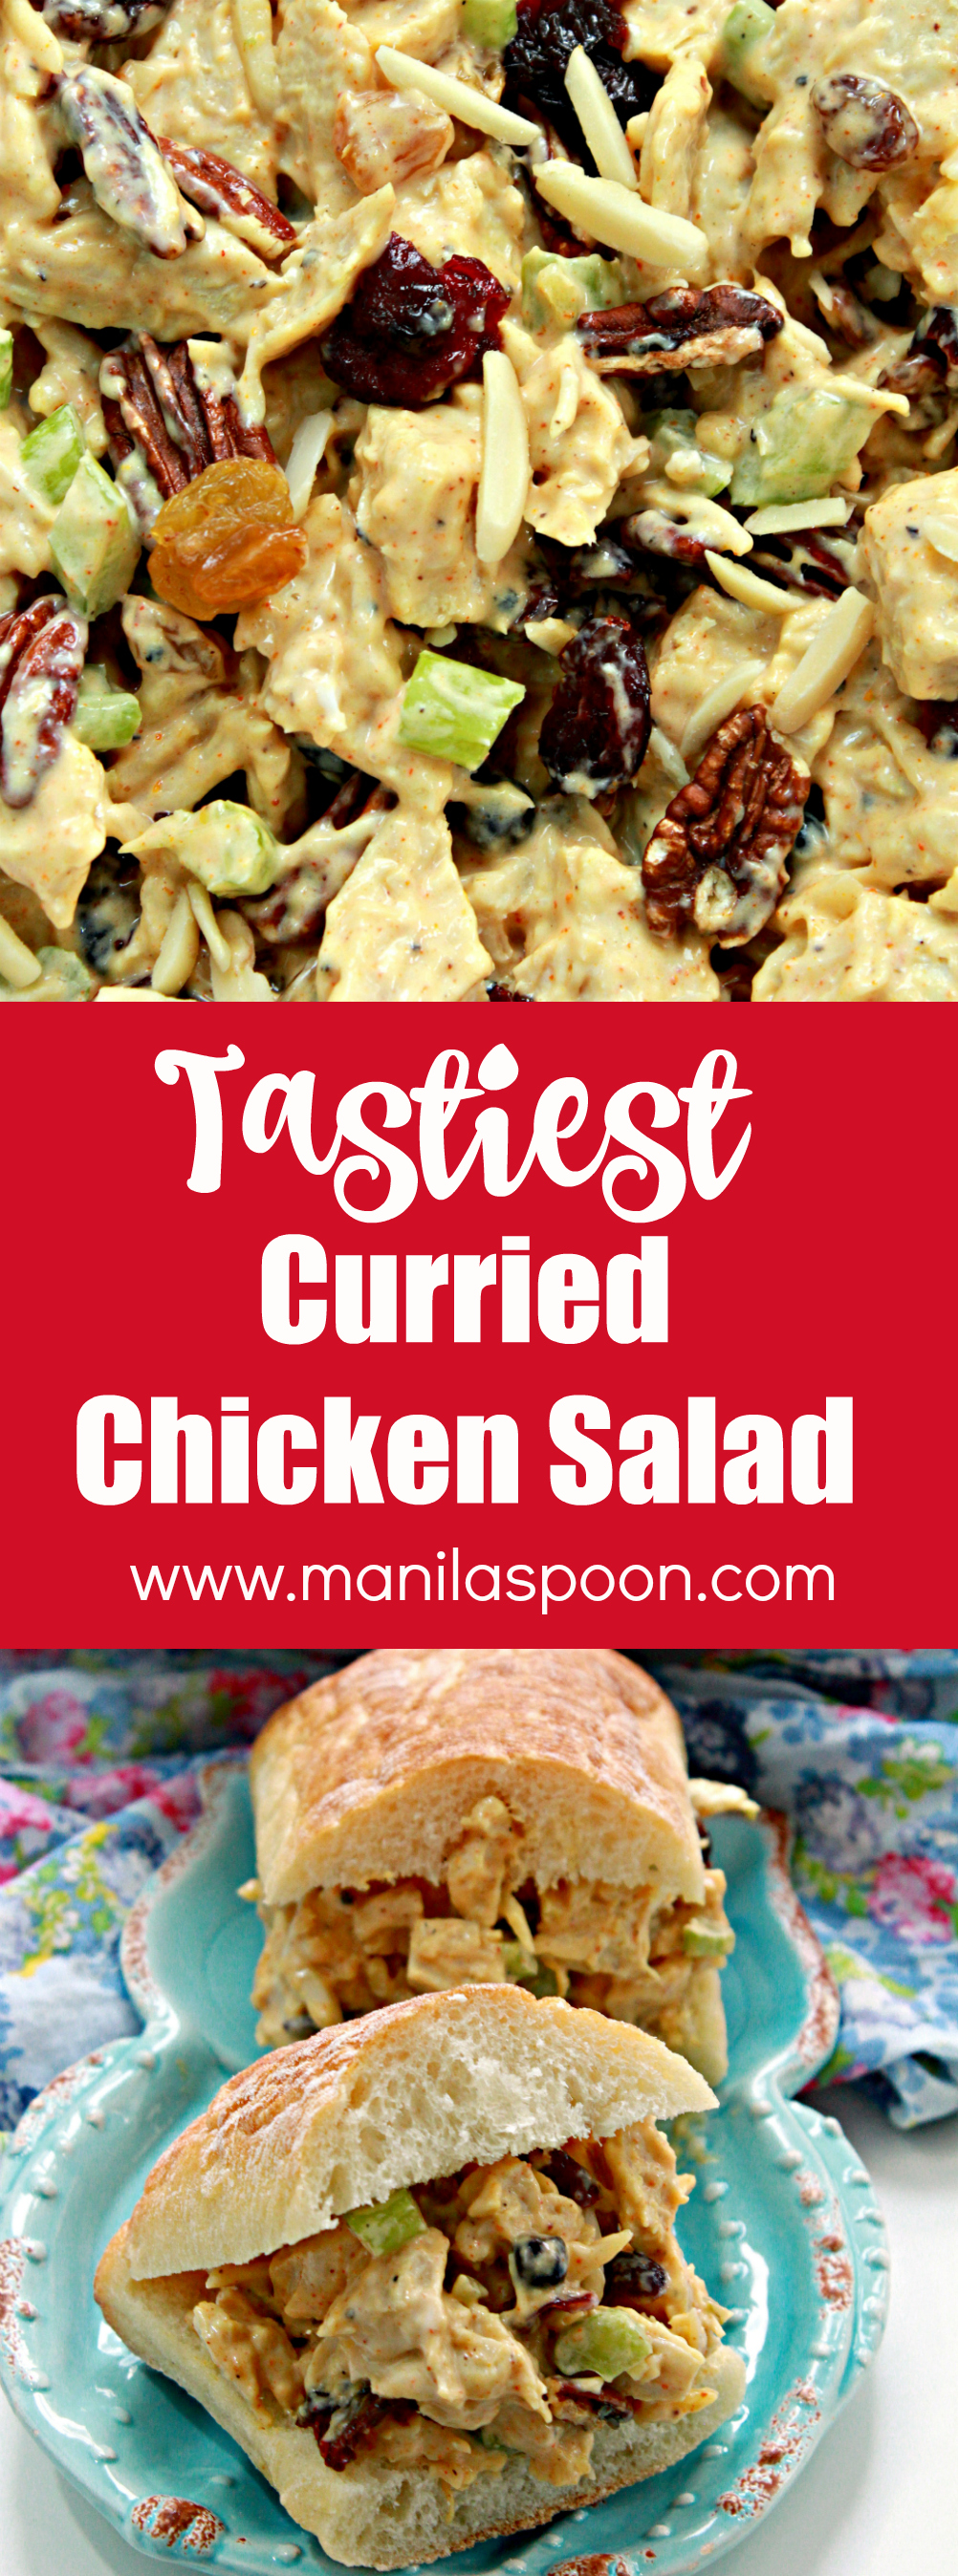 This chicken salad comes together so quickly. Seasoned with curry powder and chutney and mixed in with fruits and nuts,  too it is so deliciously good!